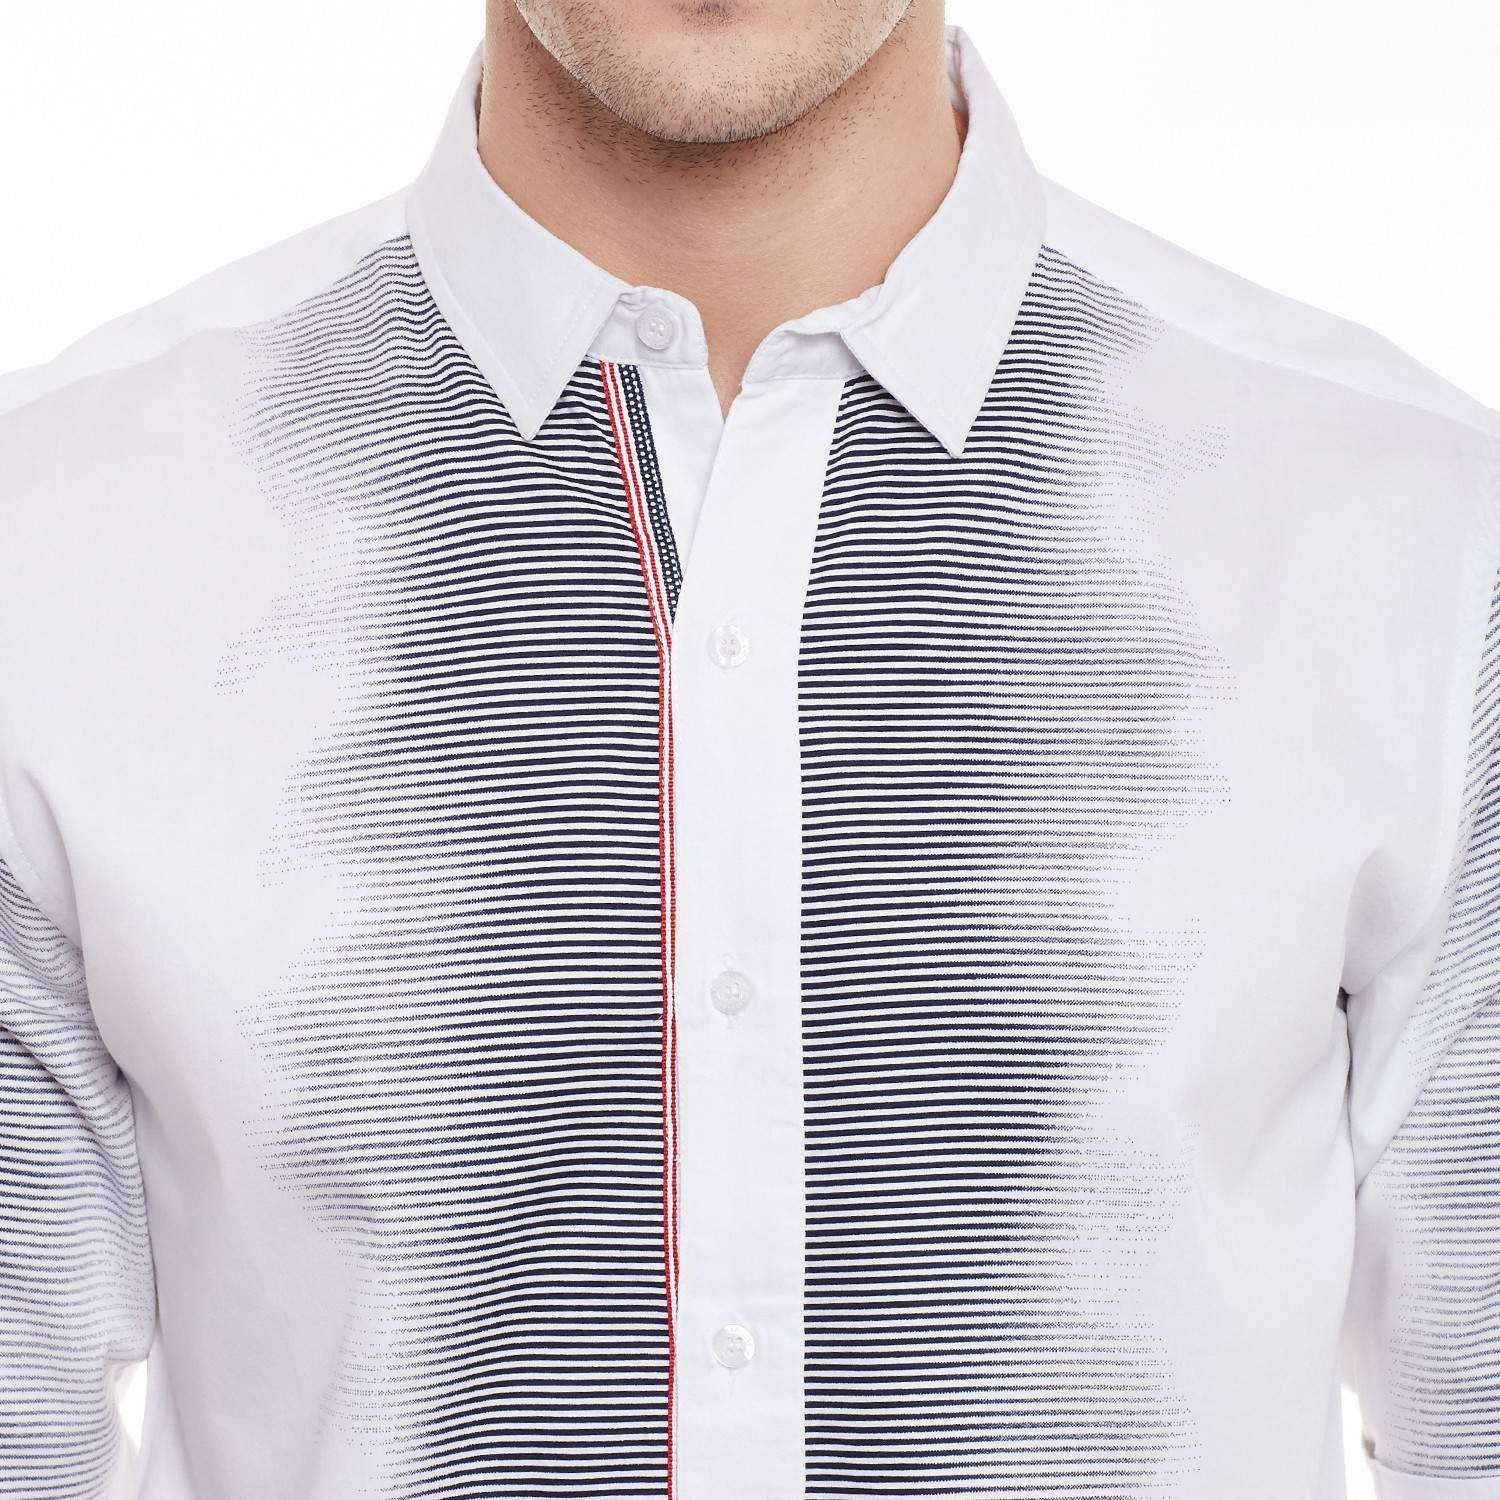 Full Sleeve Shirt with Engineered print details